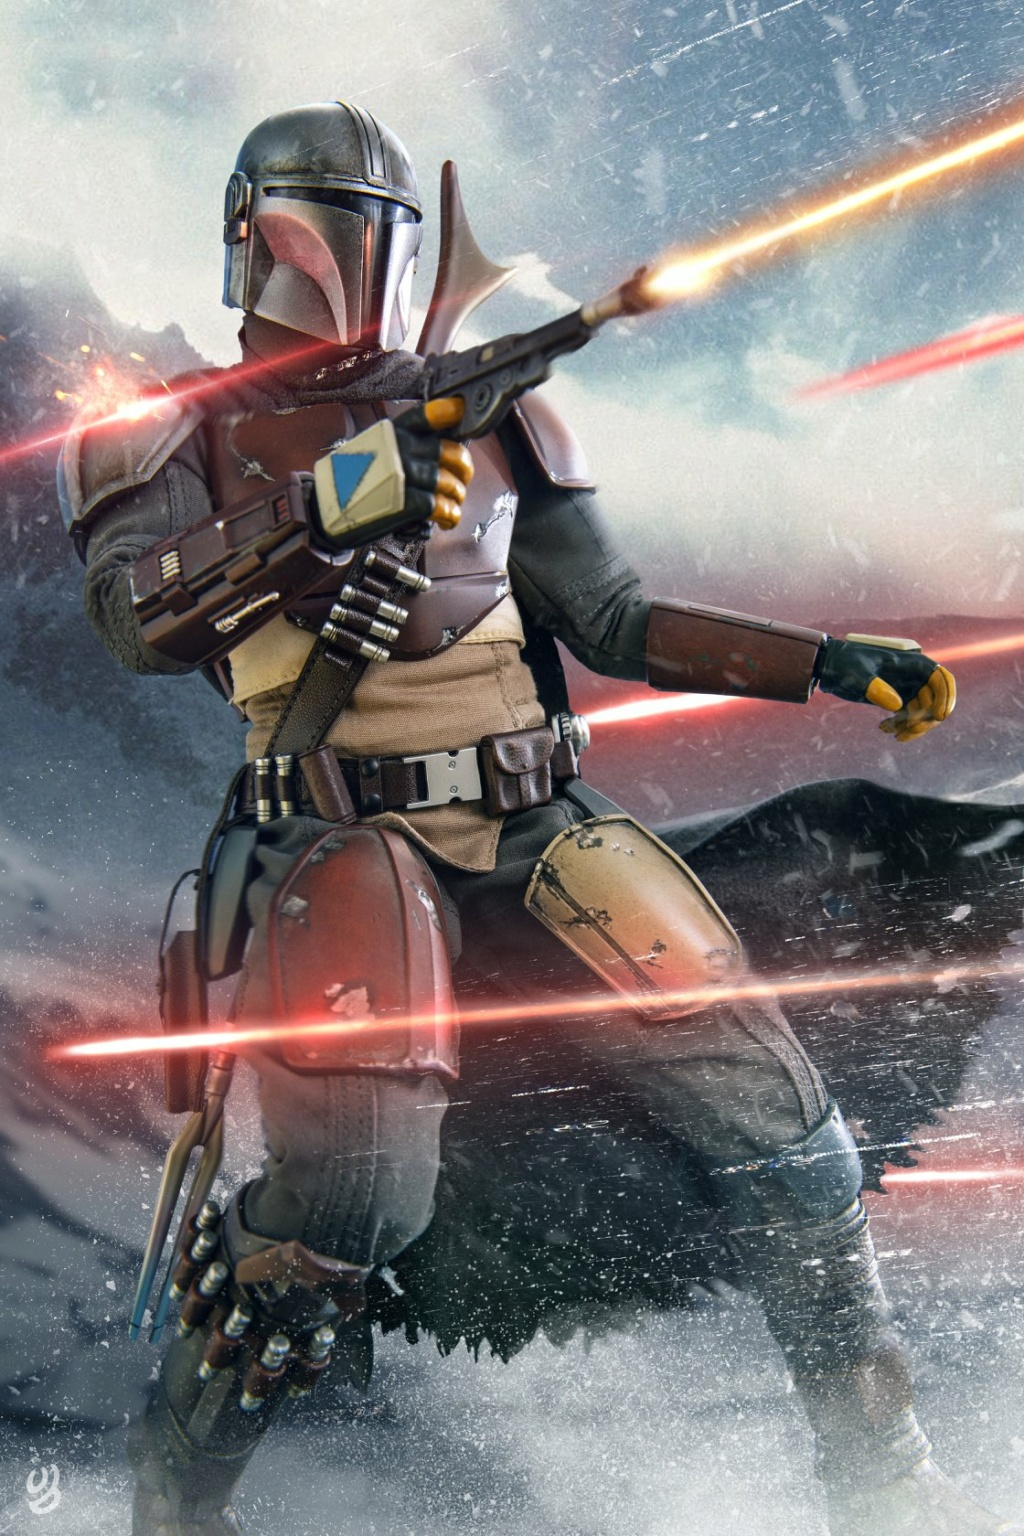 NEW PRODUCT: HOT TOYS: THE MANDALORIAN -- THE MANDALORIAN 1/6TH SCALE COLLECTIBLE FIGURE 19155